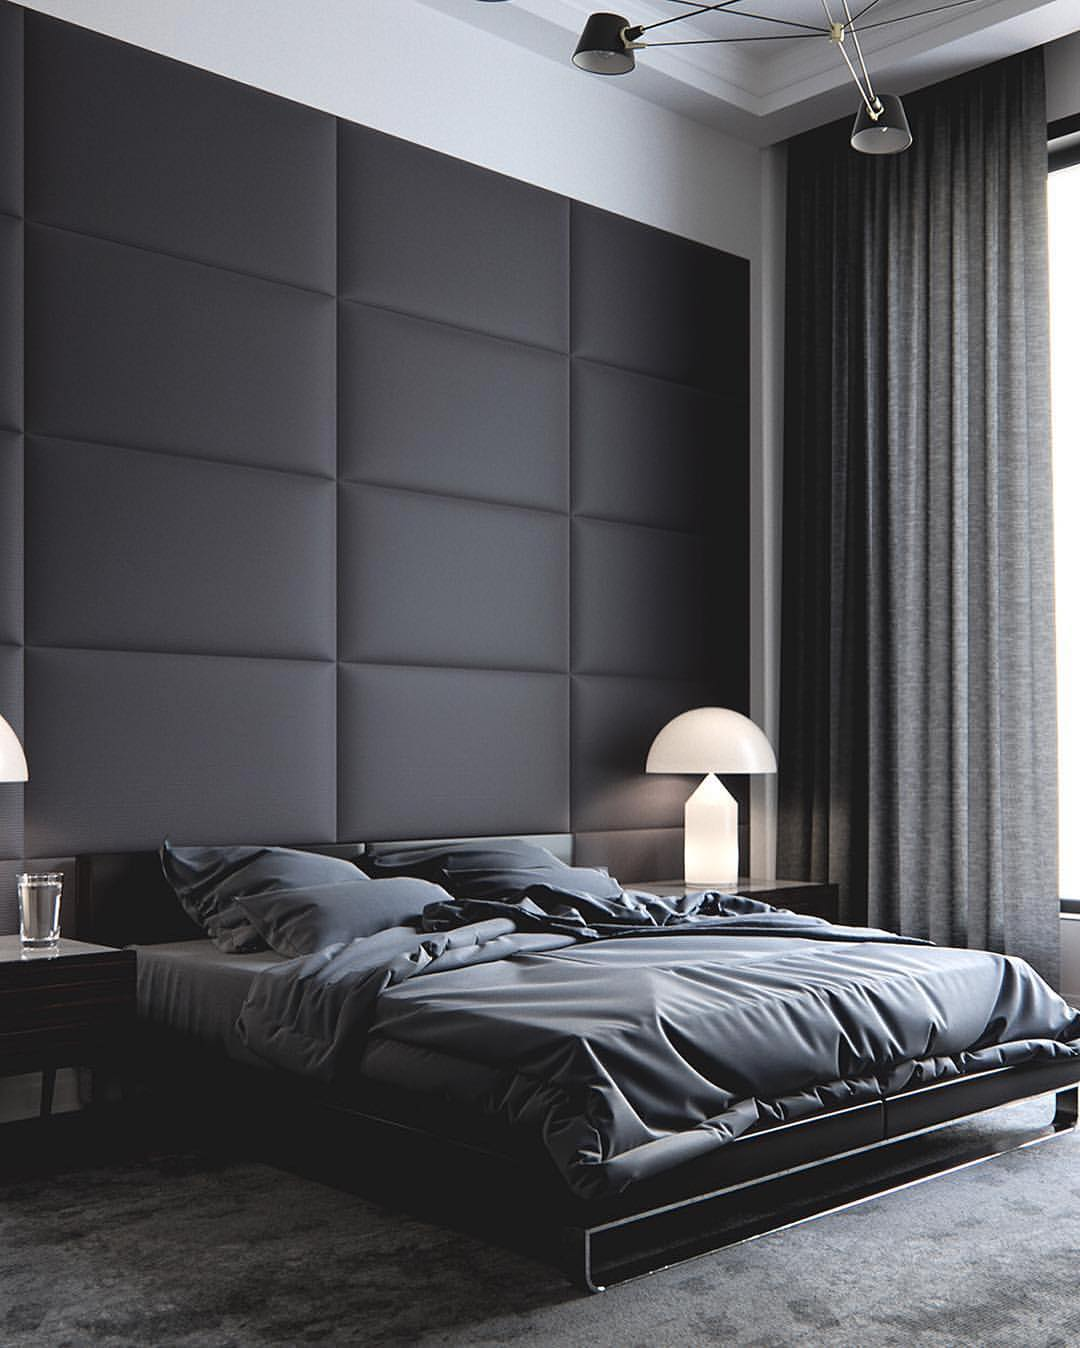 Wooden Bedroom Accessories Bedroom With Black Furniture Ideas Bedroom Design Ideas Hdb Normal Bedroom Ceiling Designs: 10 Chambres Inspirantes Aux Tonalités Masculines